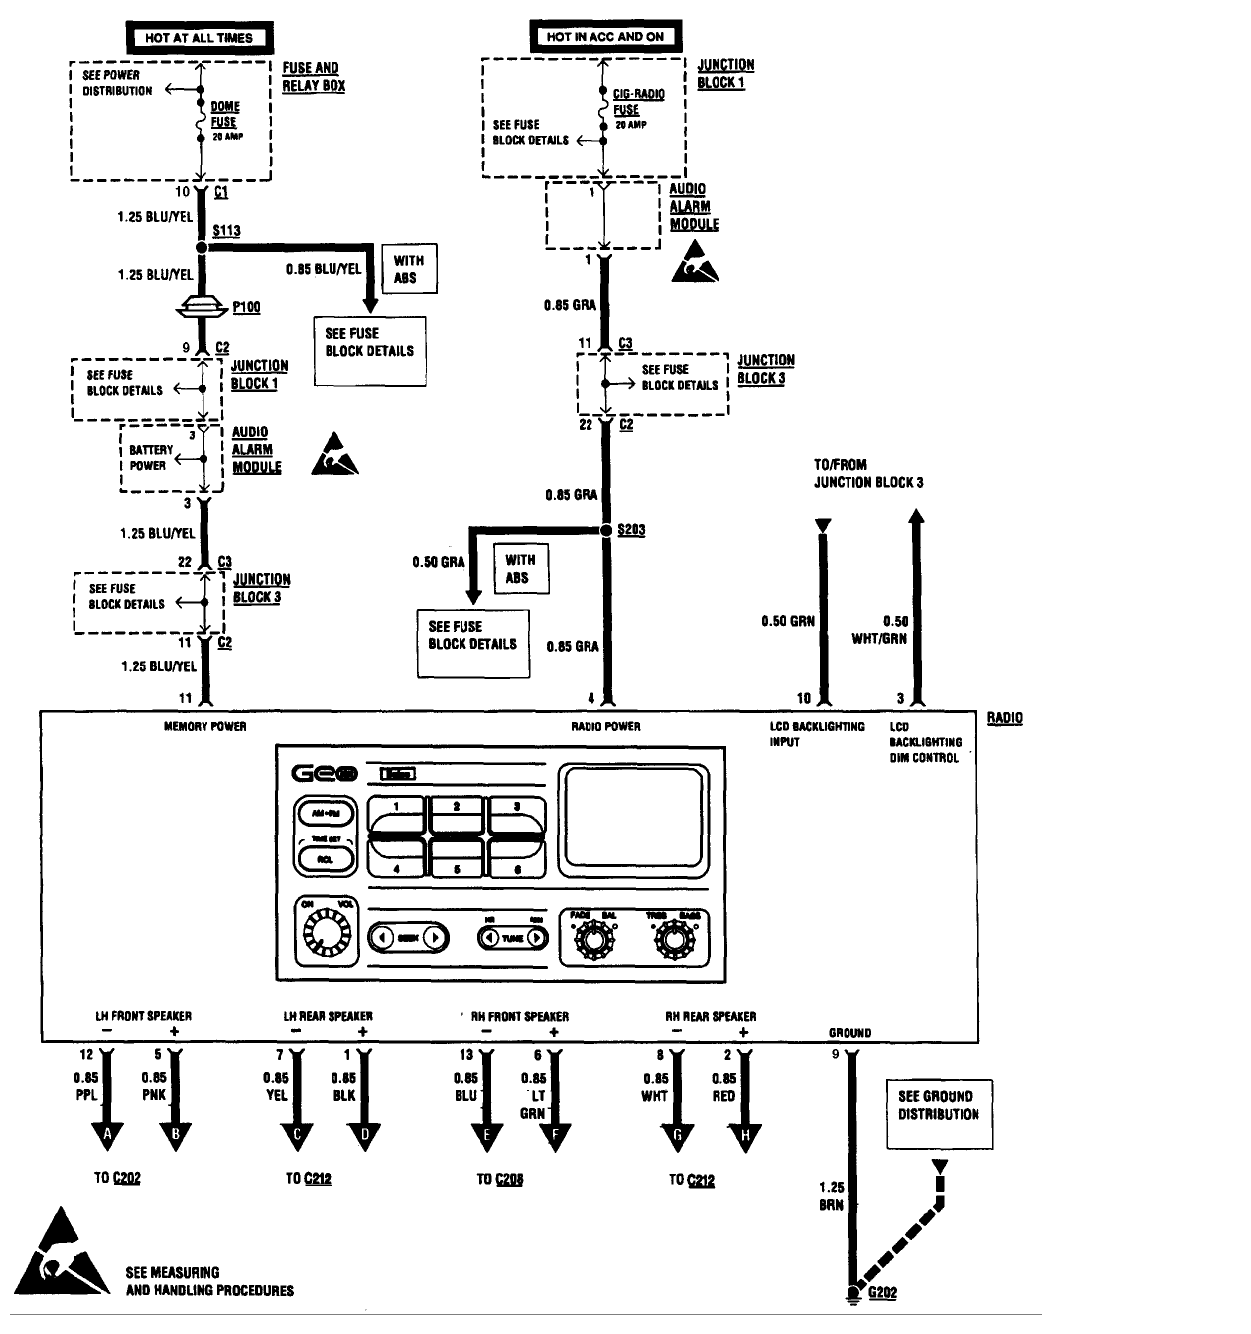 [DIAGRAM] 1990 Geo Tracker Wiring Diagram FULL Version HD